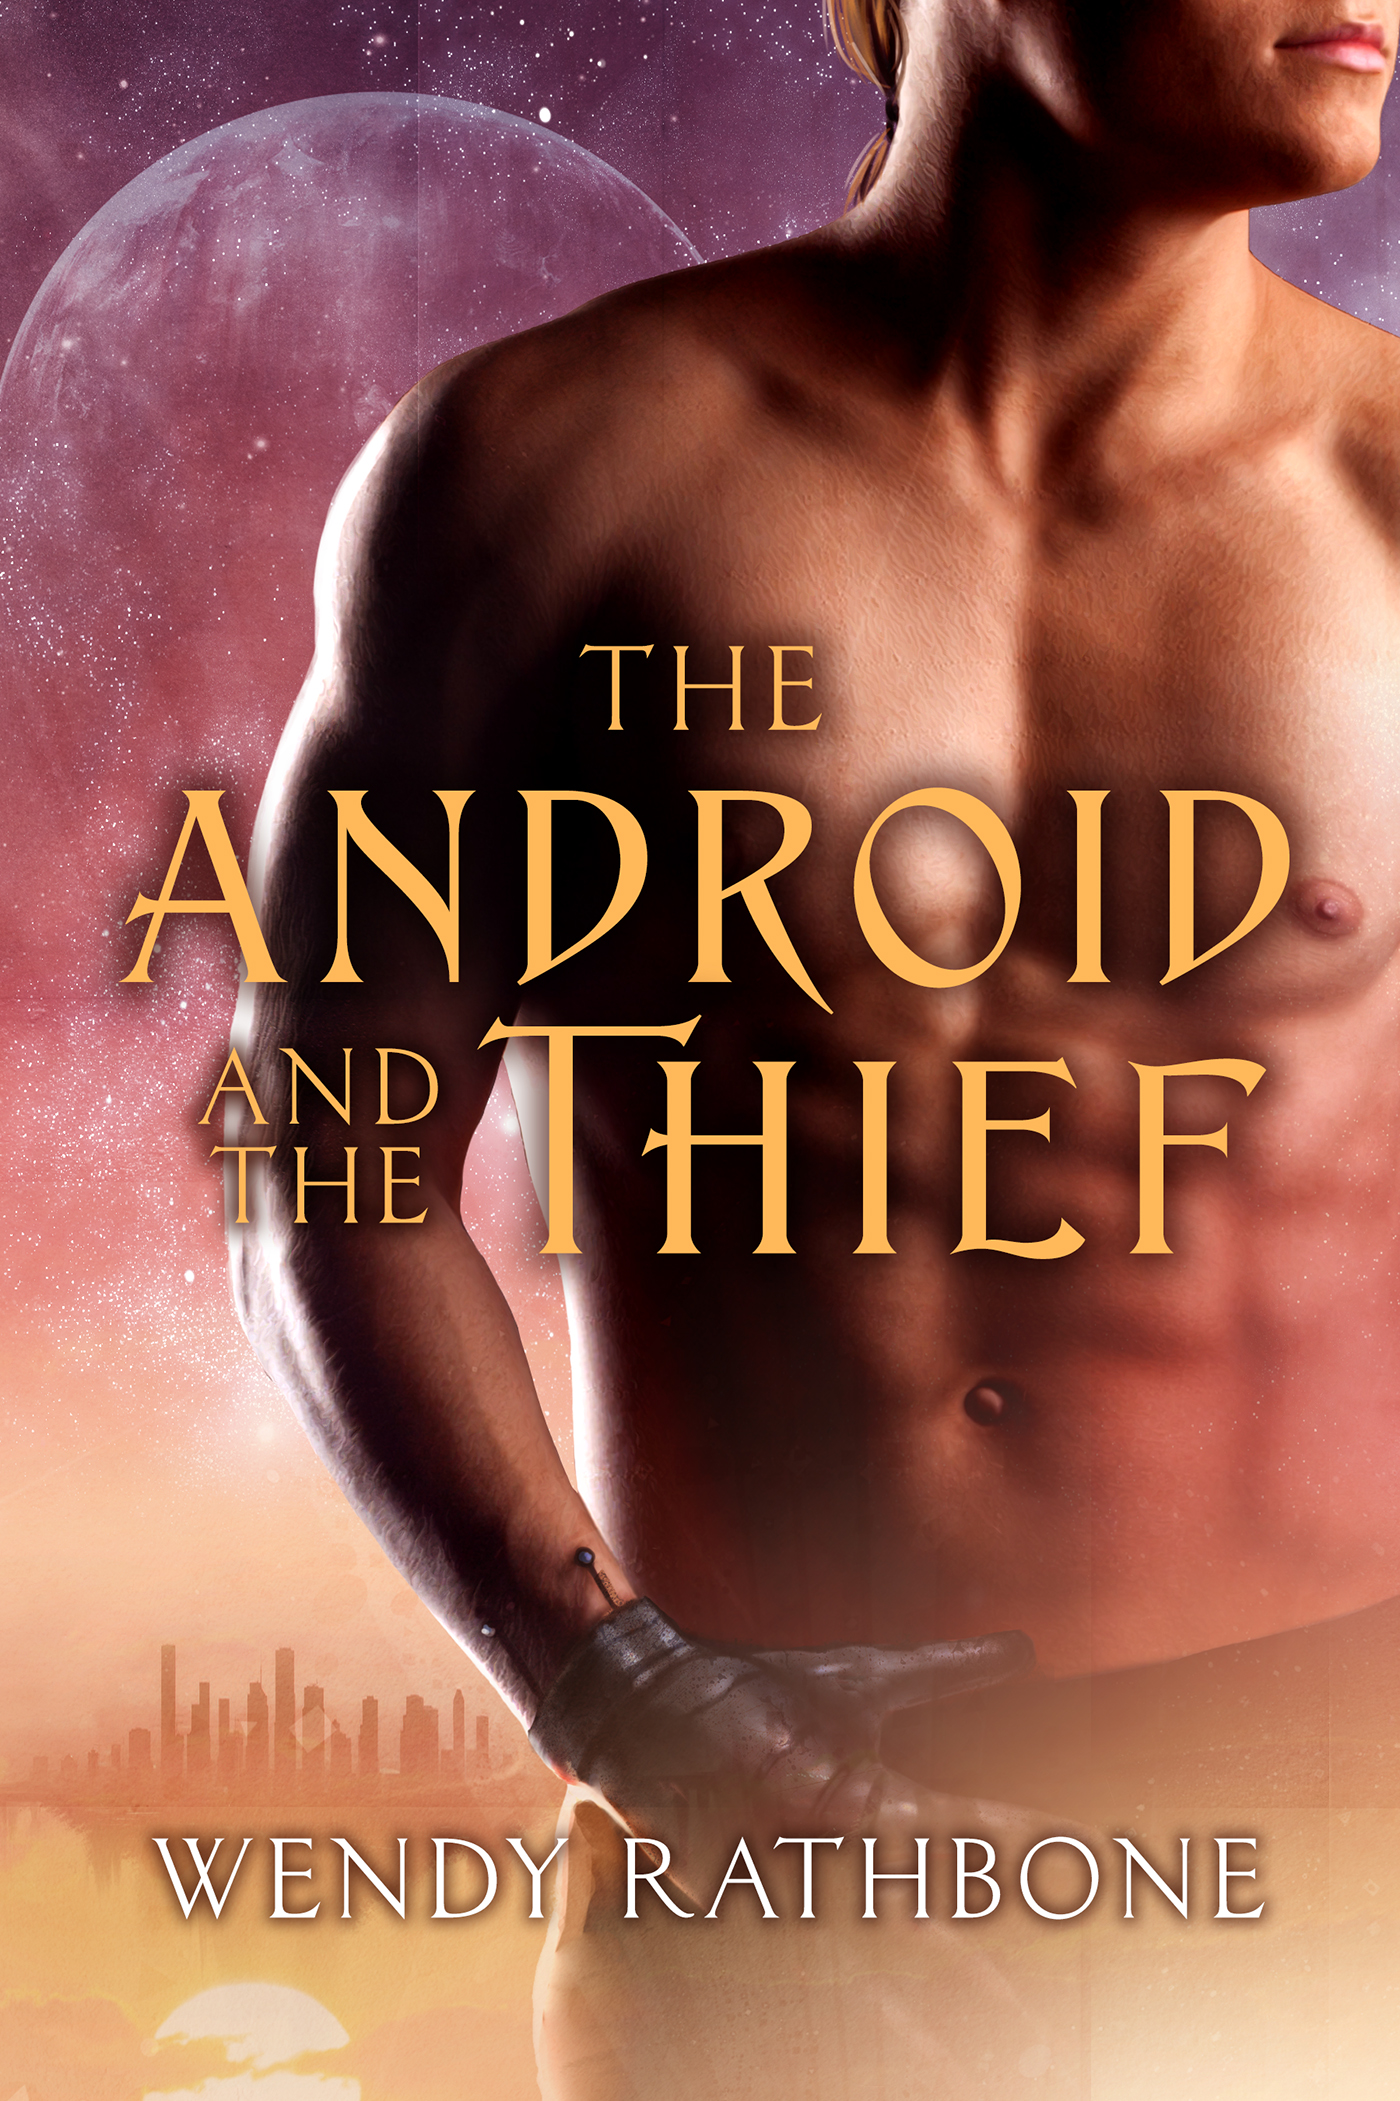 The Android and the Thief by Wendy Rathbone